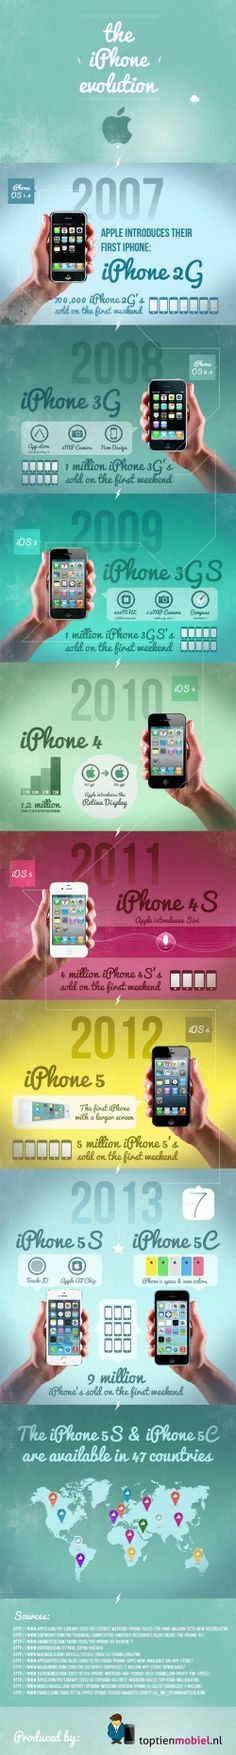 La storia dell'iPhone in una infografica